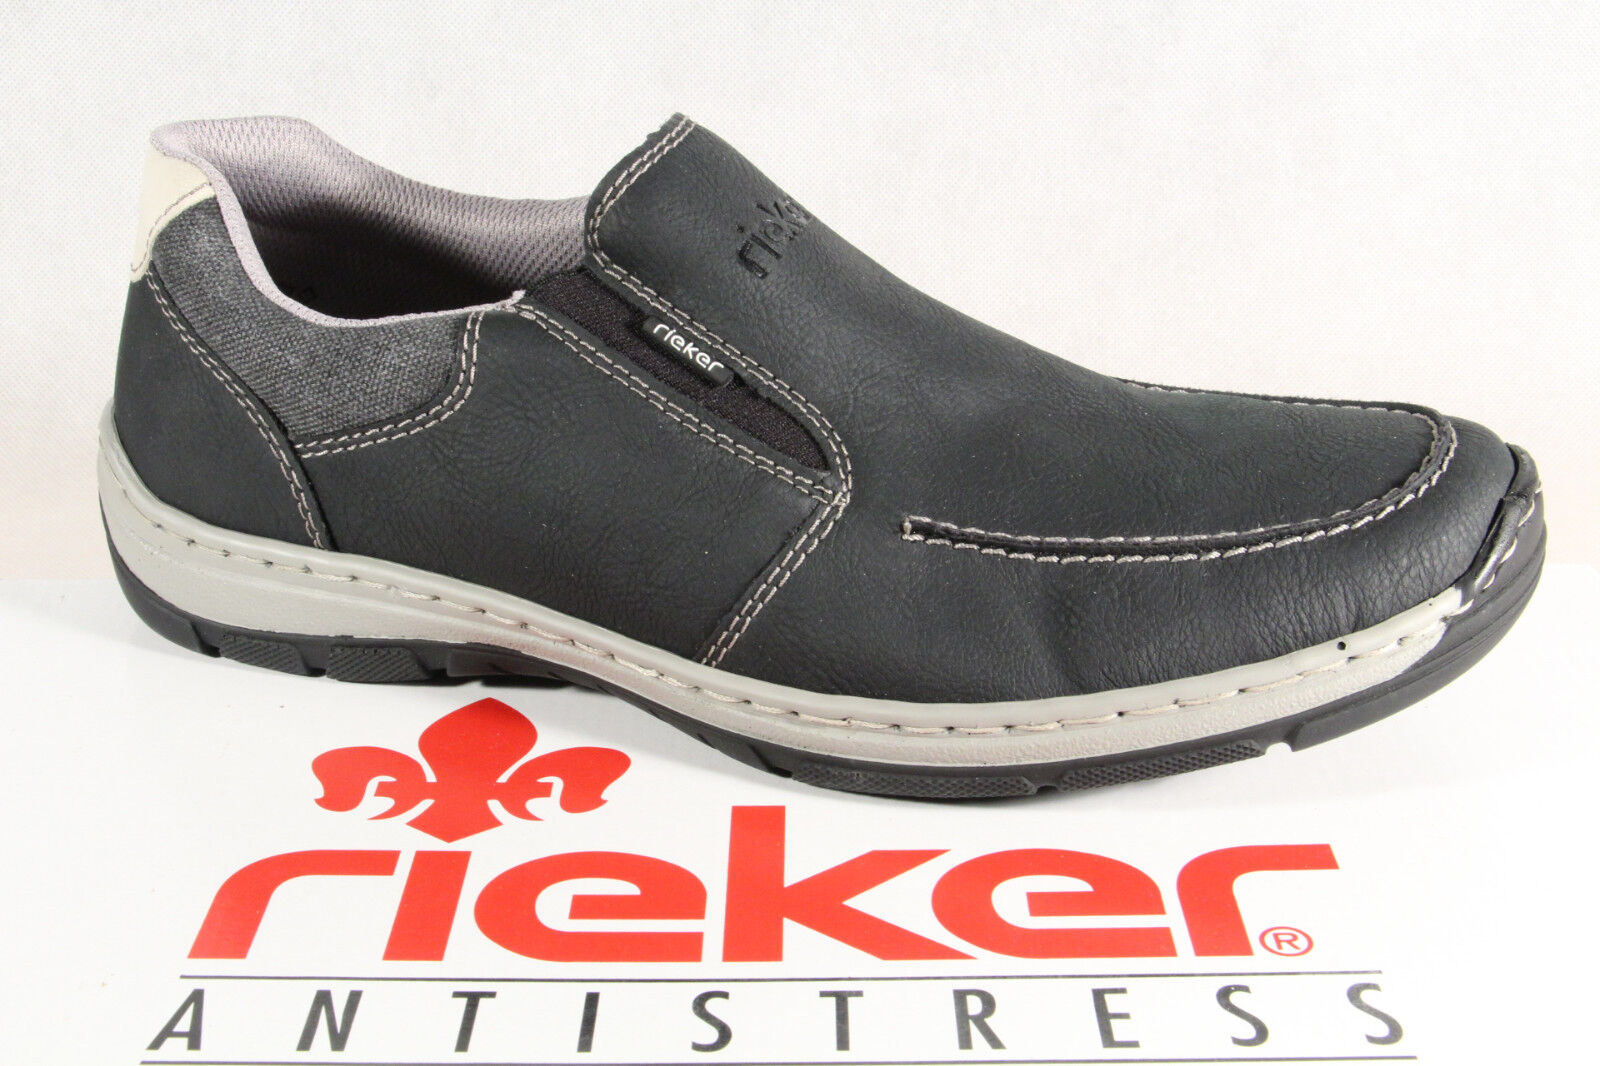 Rieker Sneakers Men's Slippers Low Shoes Sneakers Rieker Trainers Black New 1f782a